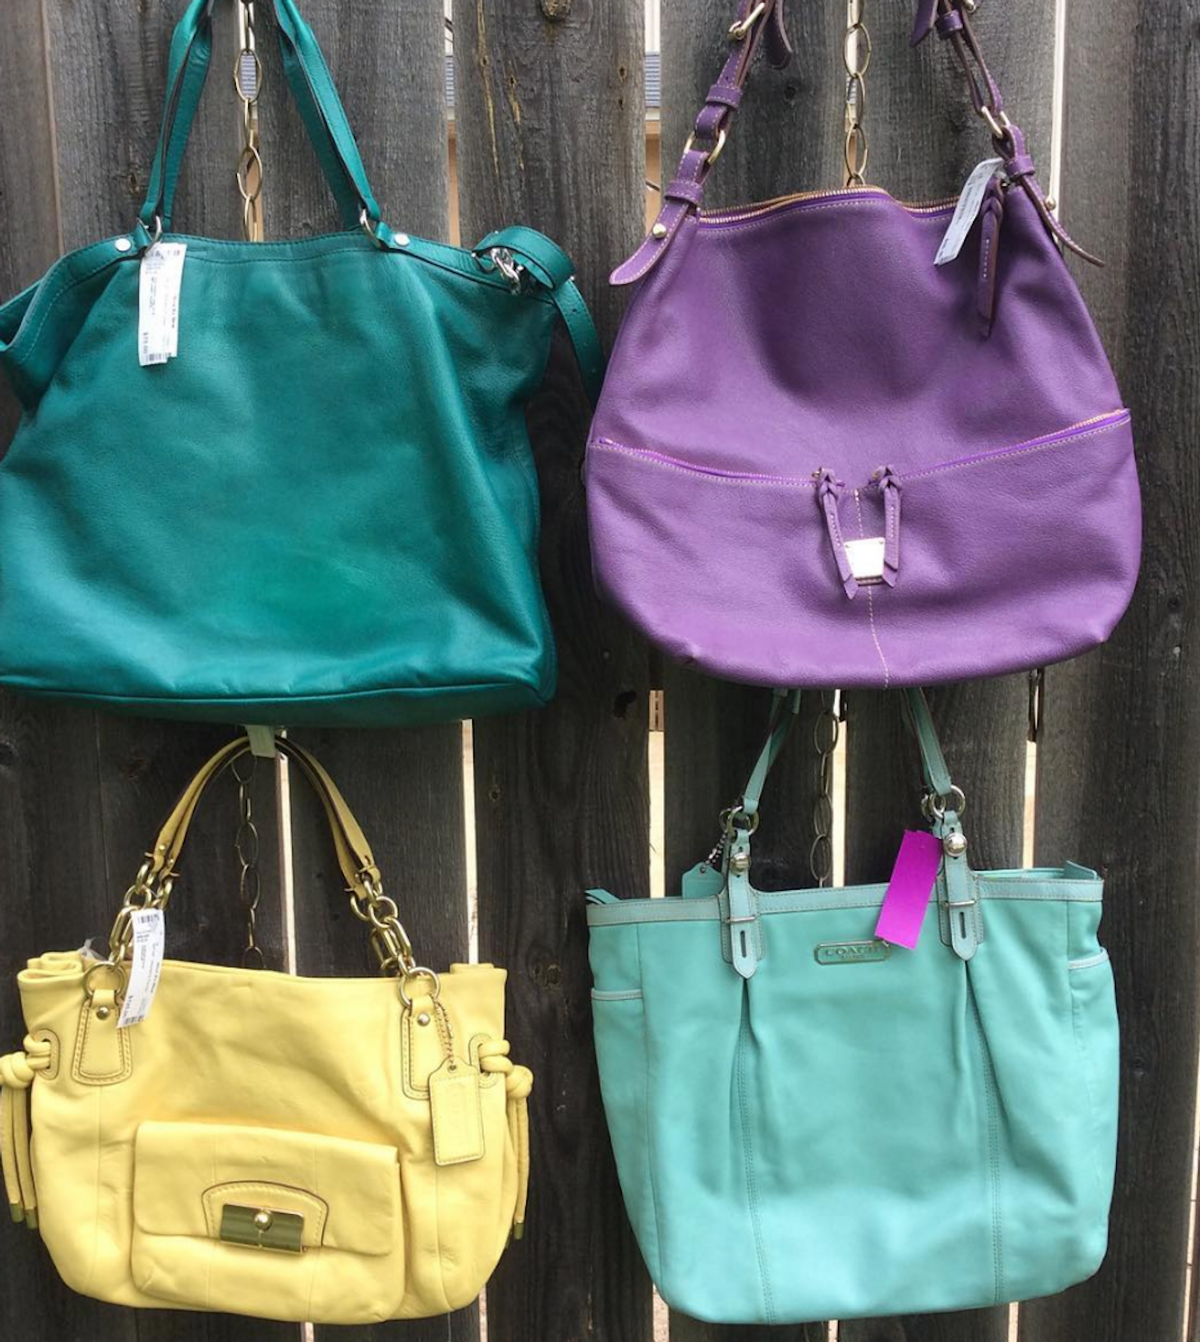 17 Signs You're Obsessed With Purses